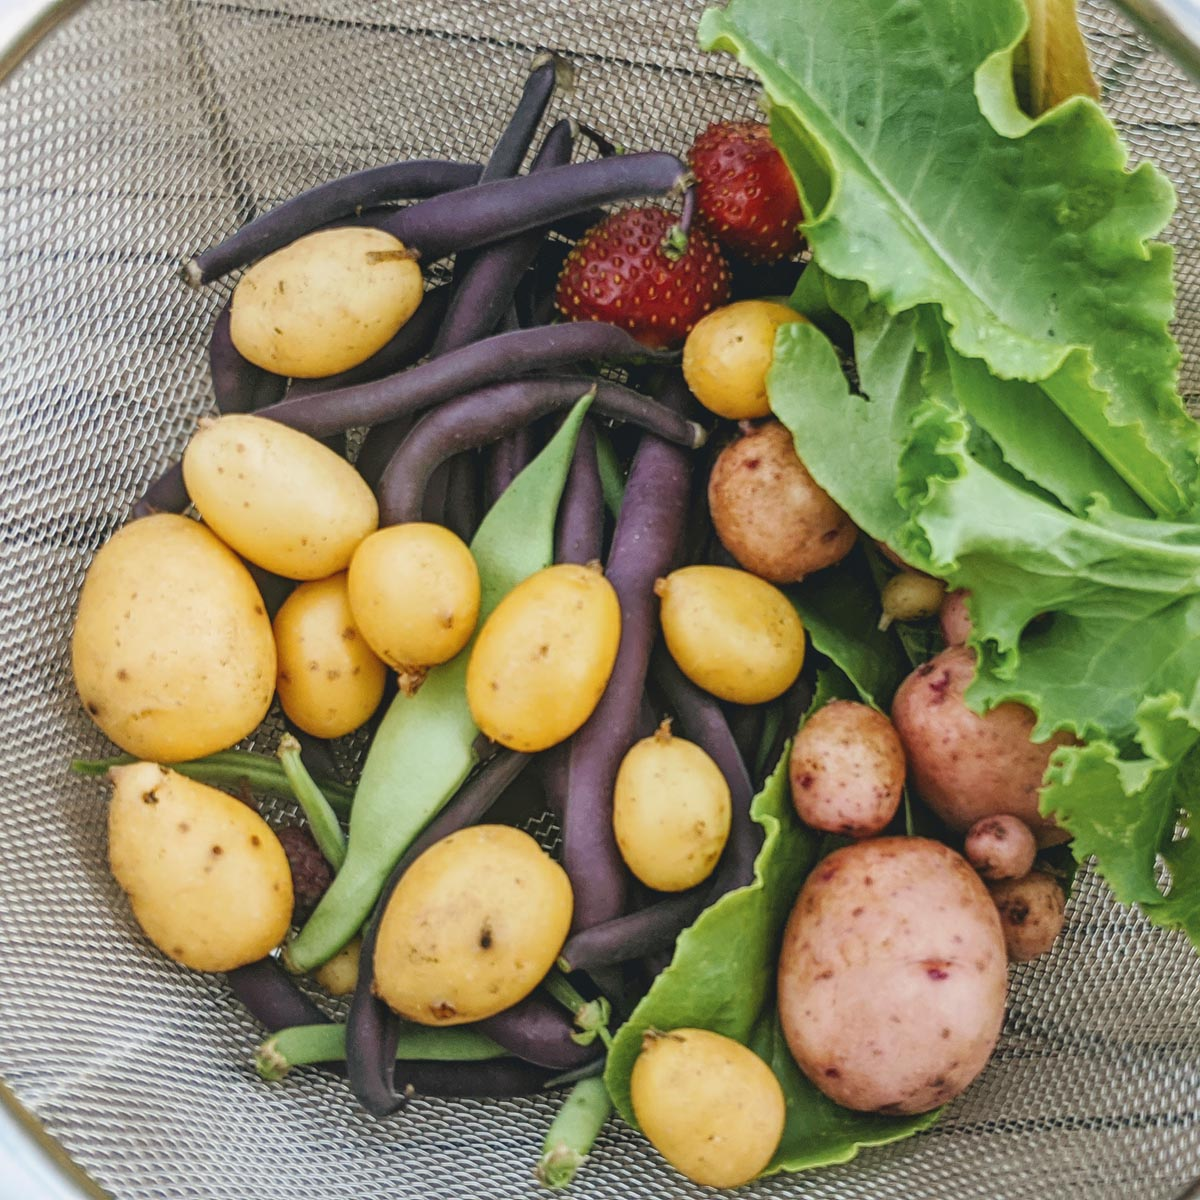 When to Harvest Potatoes & How to Grow Them